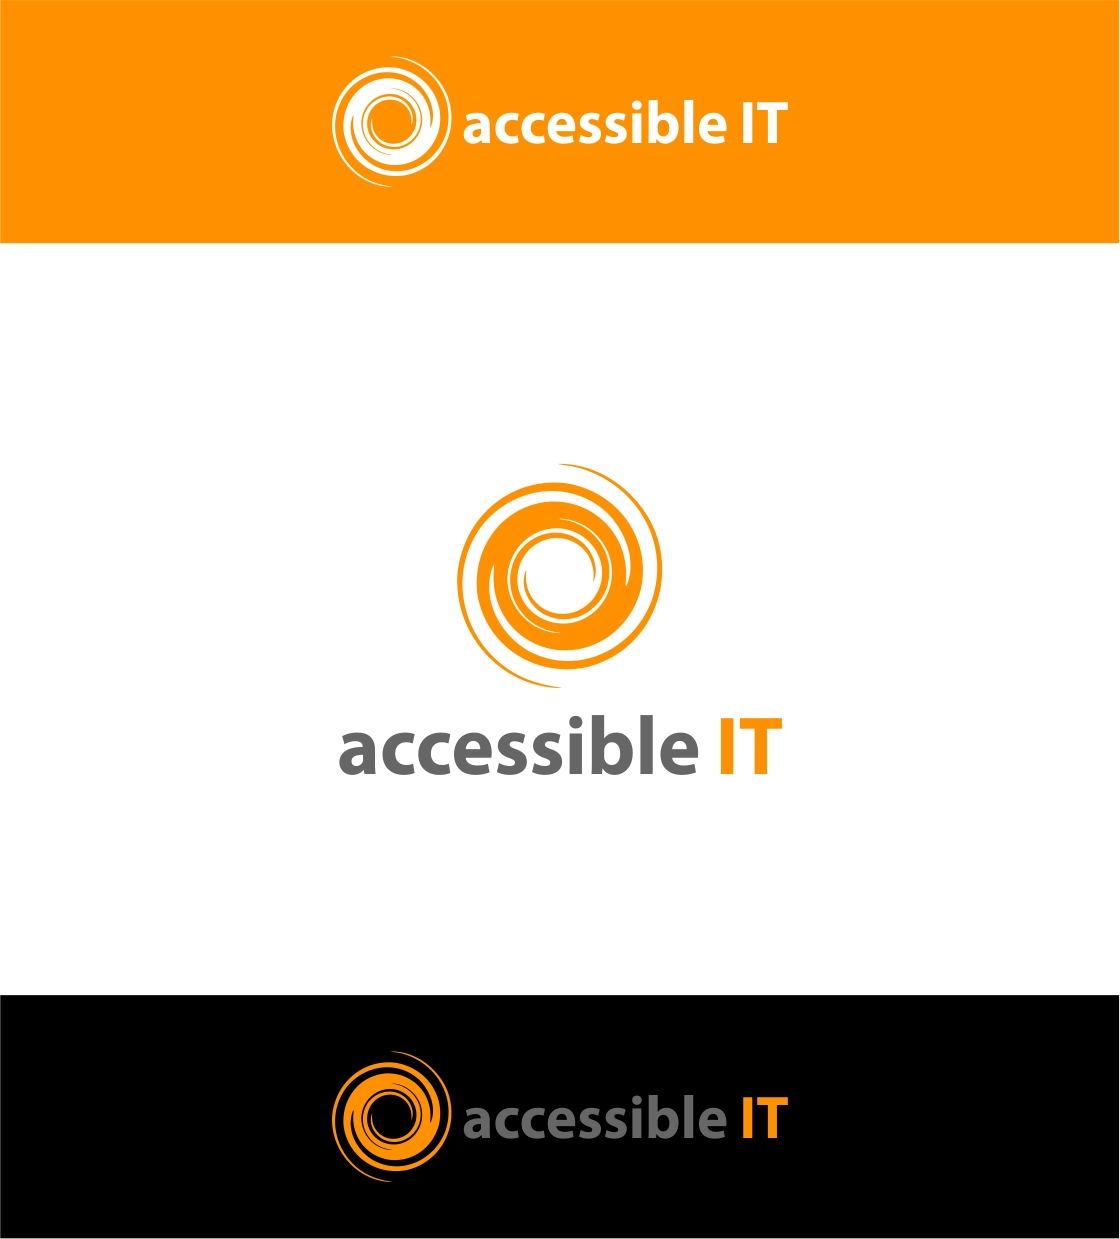 Logo Design by haidu - Entry No. 314 in the Logo Design Contest Logo Design Needed for Exciting New Company Accessible IT.